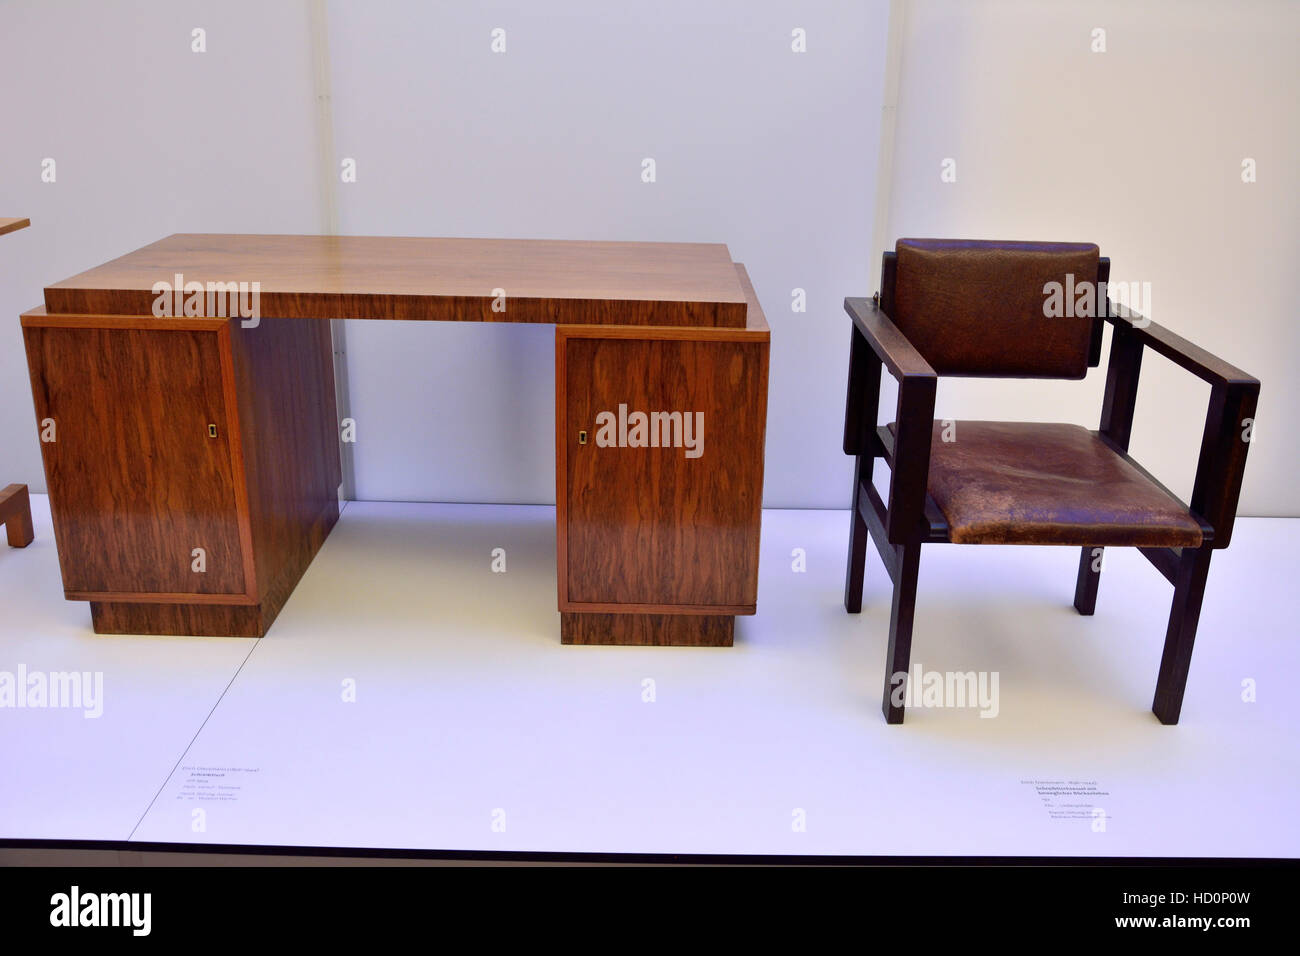 bauhaus m bel auf dem display an das bauhaus museum in weimar stockfoto bild 128480377 alamy. Black Bedroom Furniture Sets. Home Design Ideas